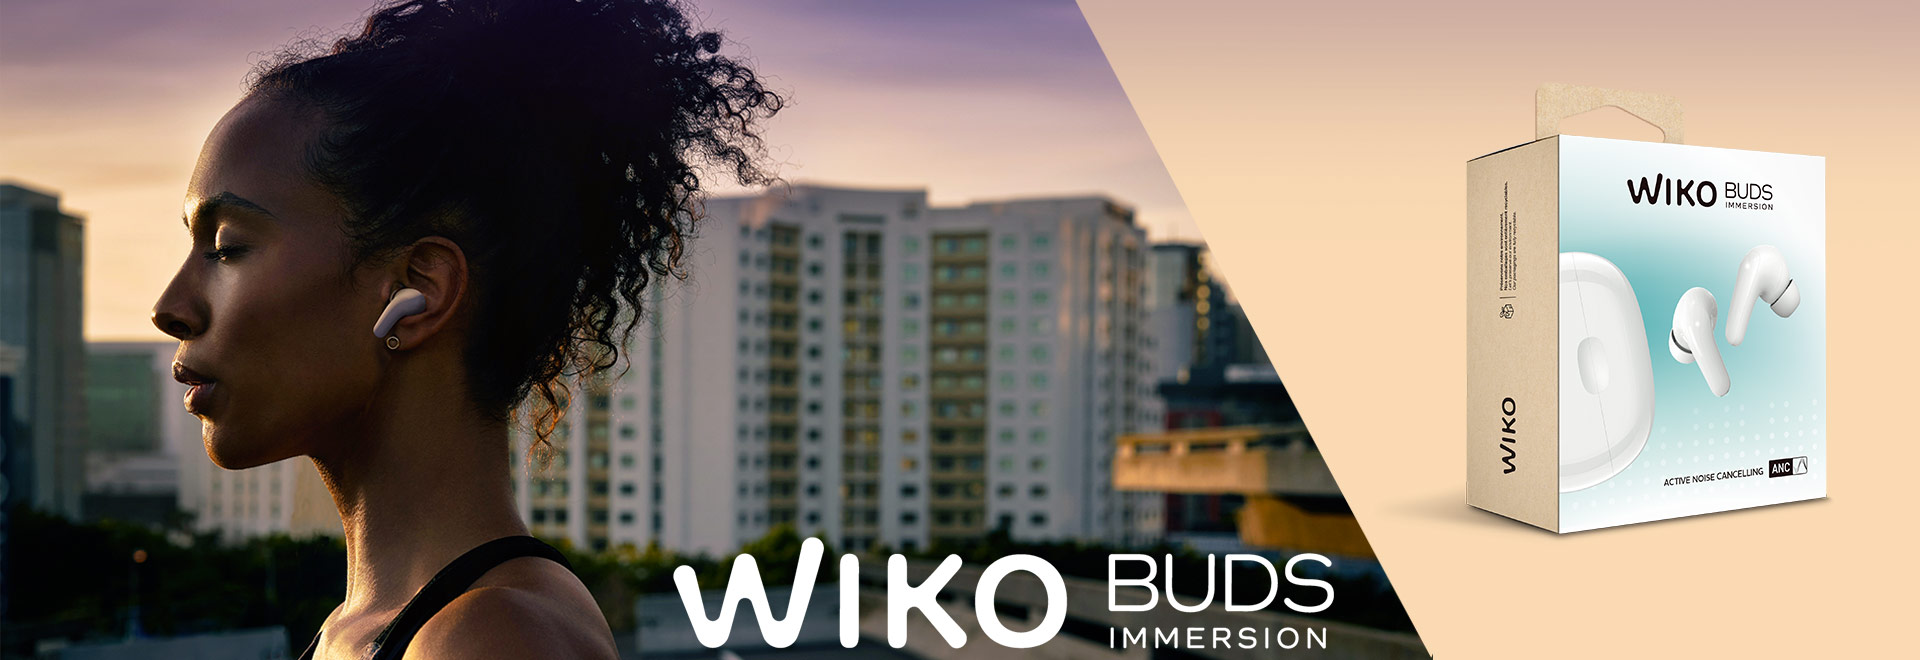 https://it.wikomobile.com/shop/iot-wiko-buds-immersion/